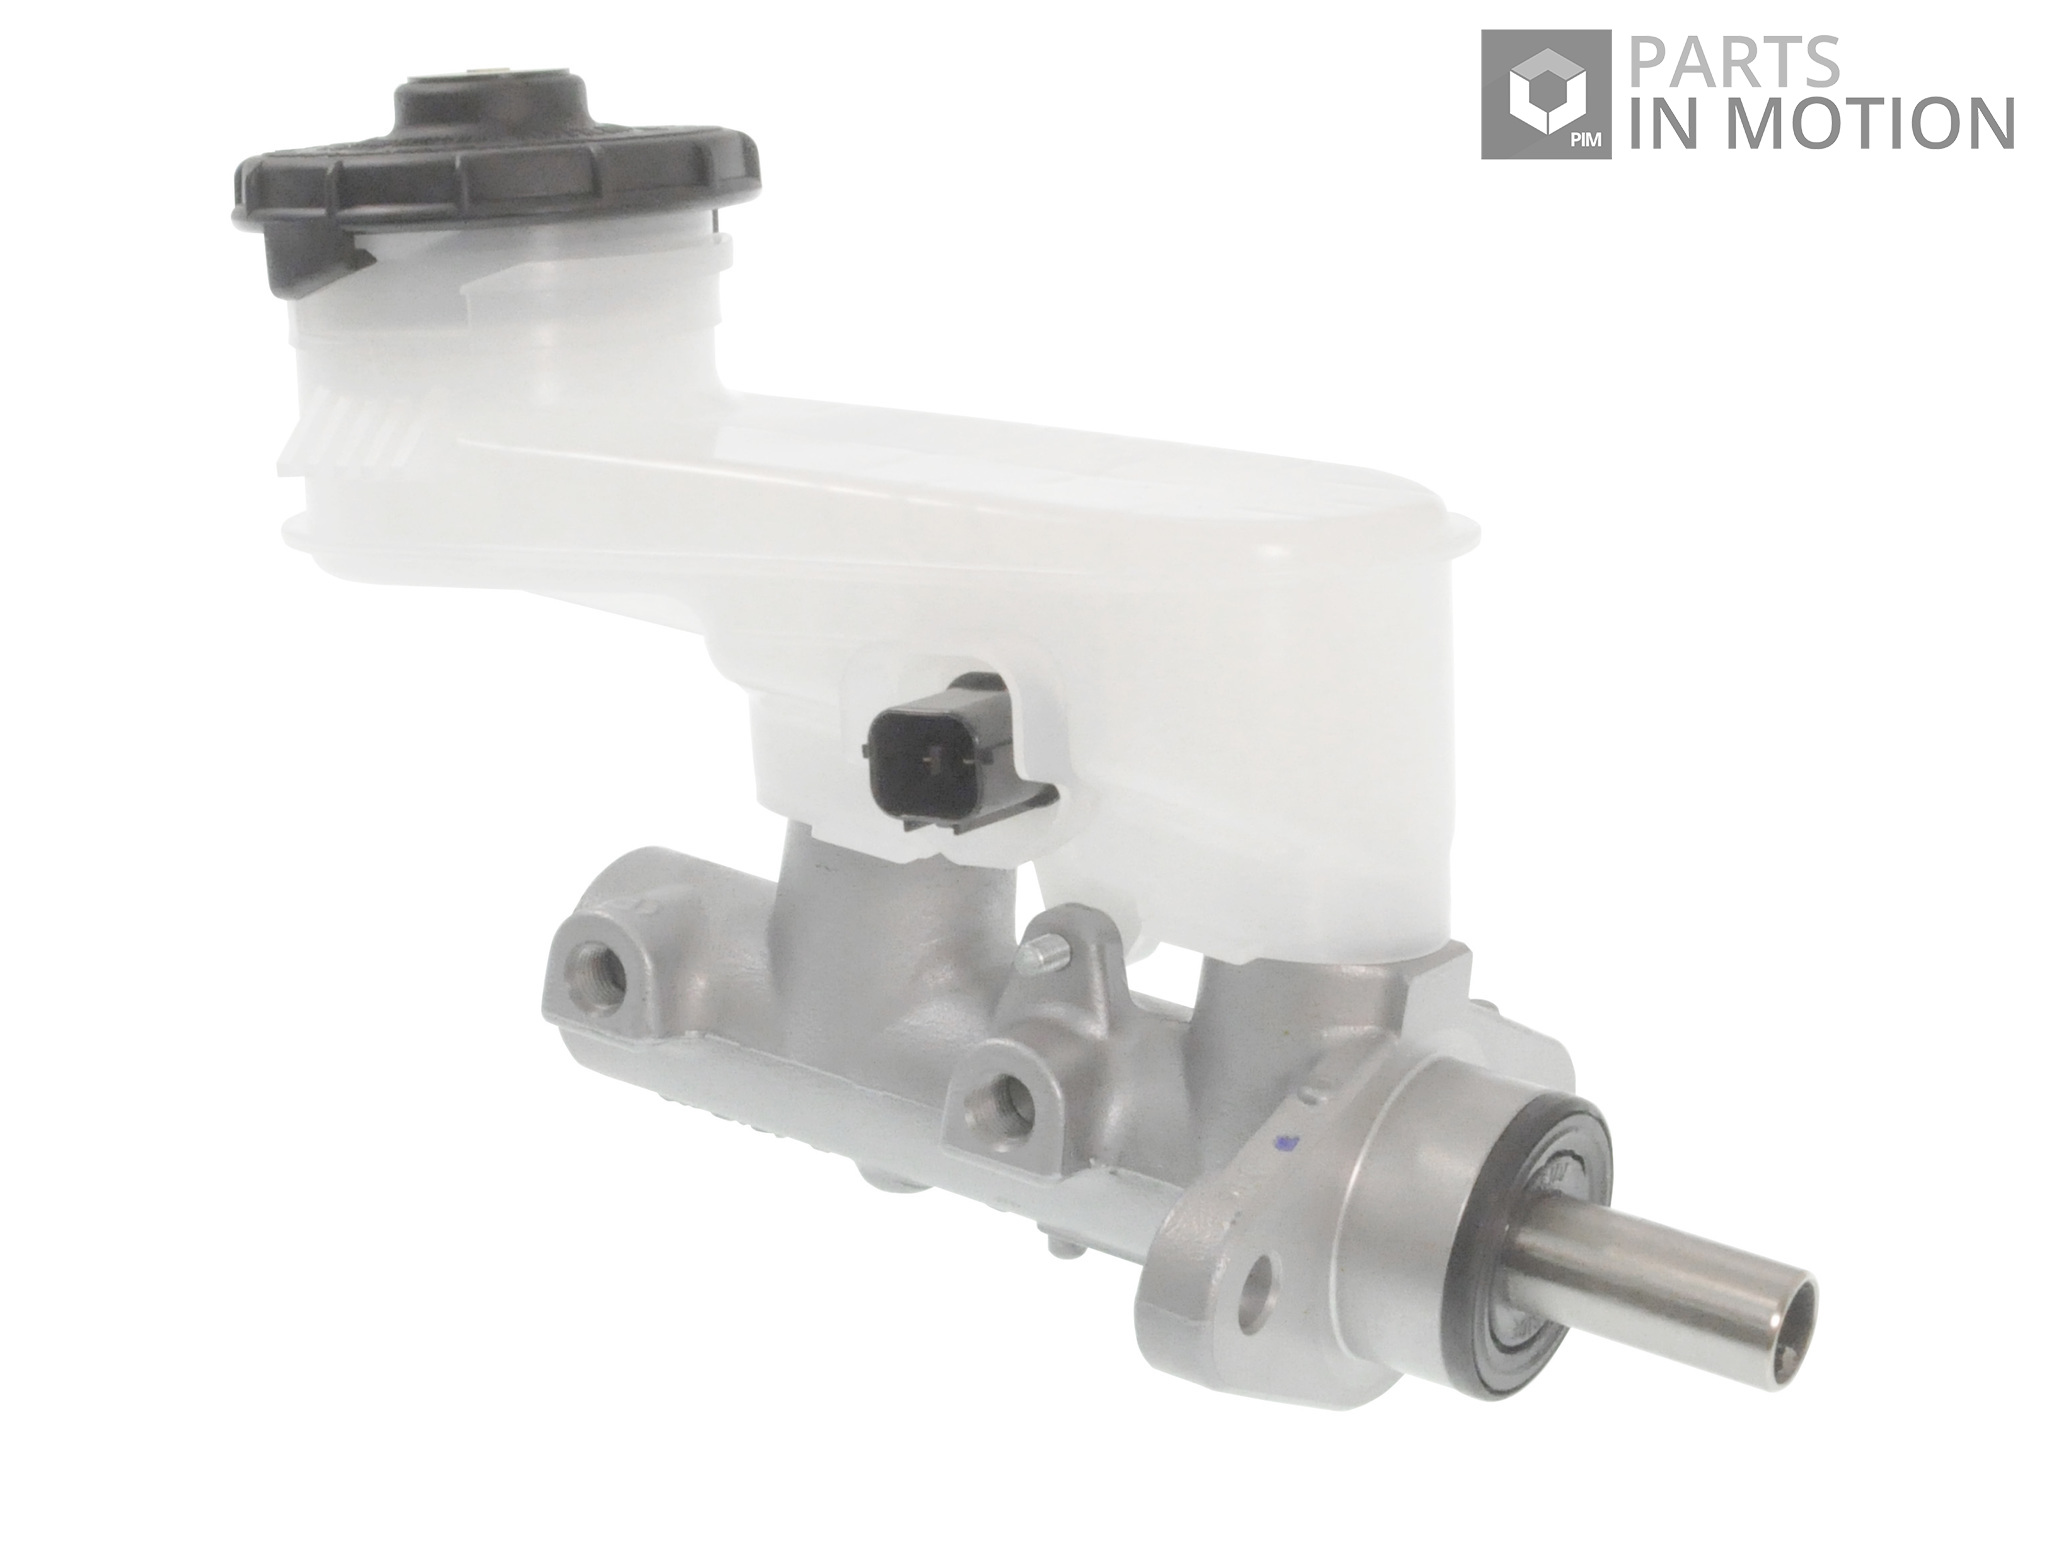 Brake Master Cylinder fits HONDA CR-V RD4 2.0 01 to 07 ADL Quality Replacement